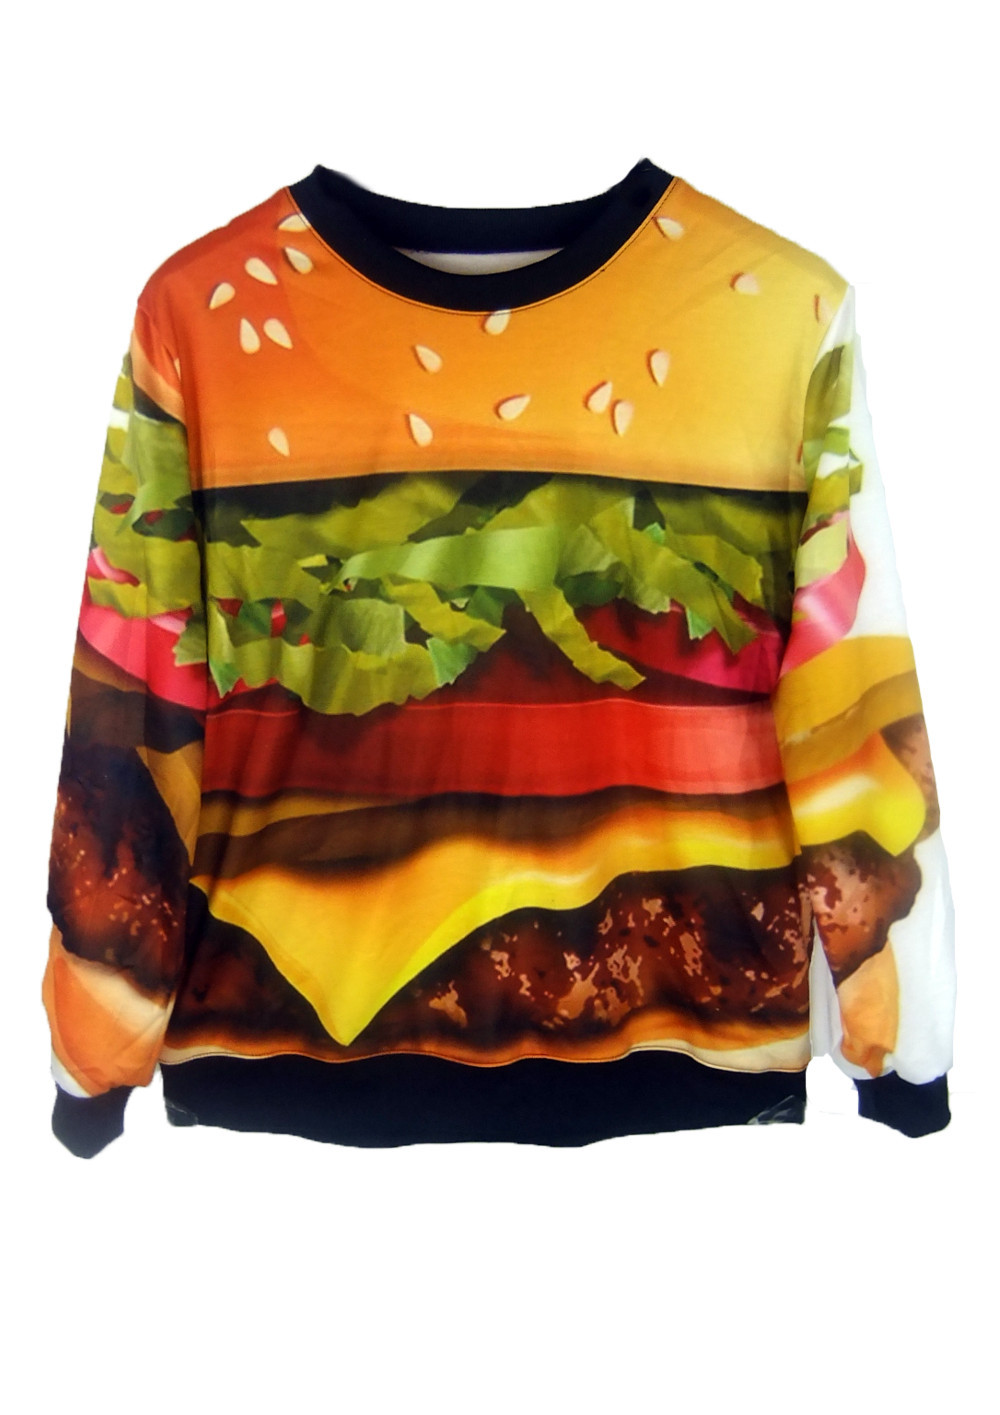 Women Coats Winter Clothings Hamburger Galaxy Sweatshirts Printed Hoodies Plus | eBay